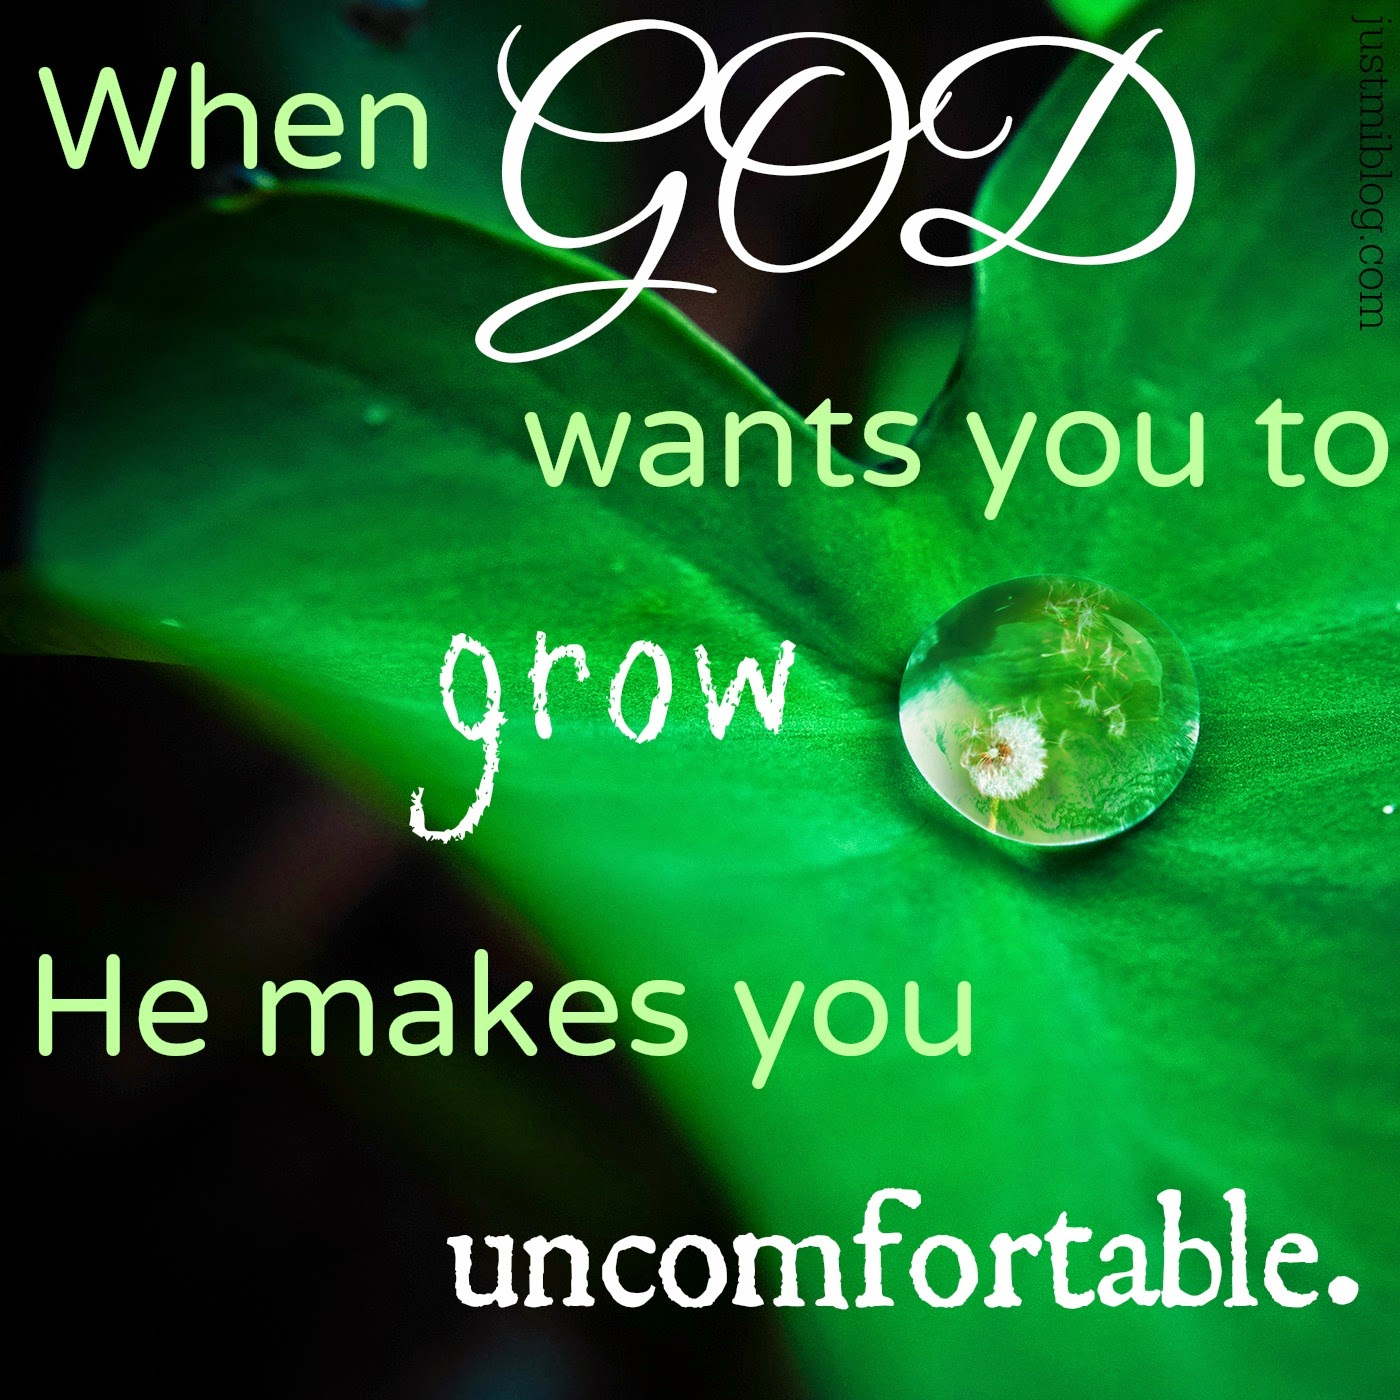 When God wants you to grow He makes you uncomfortable quote.